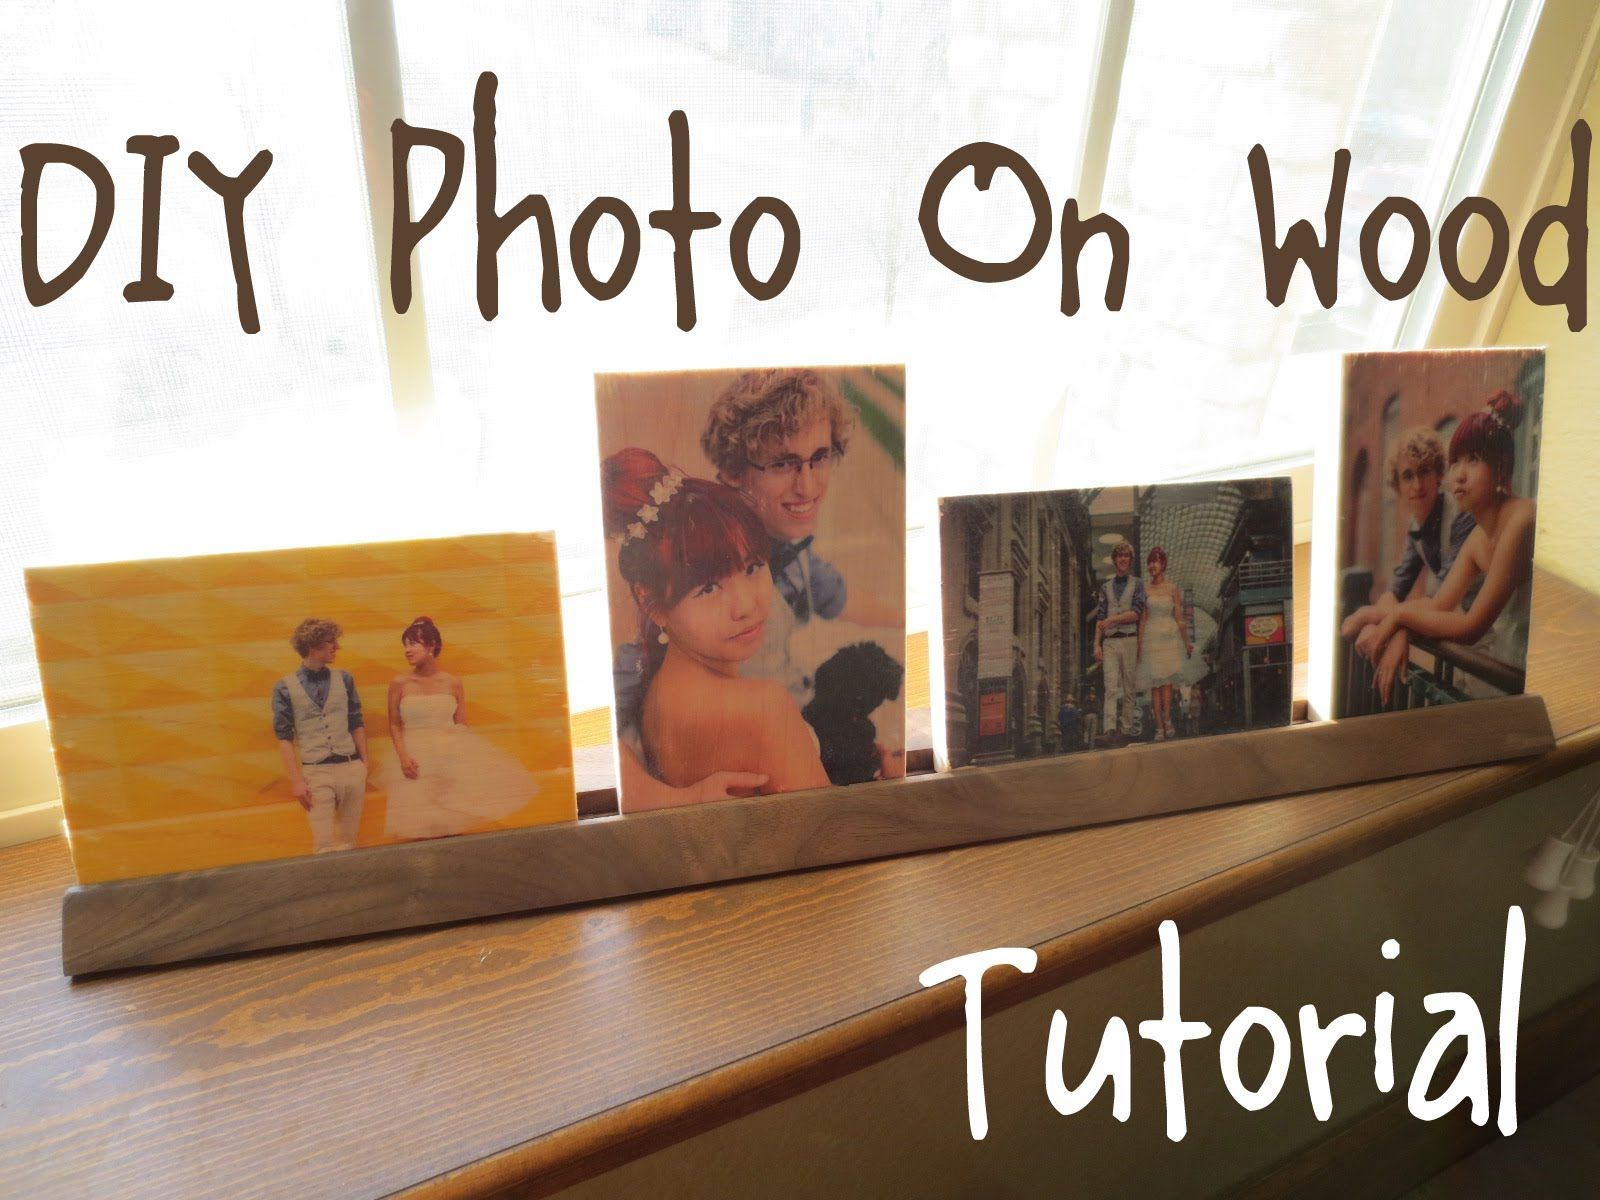 Diy Photo On Wood Video With Images Photo On Wood Picture